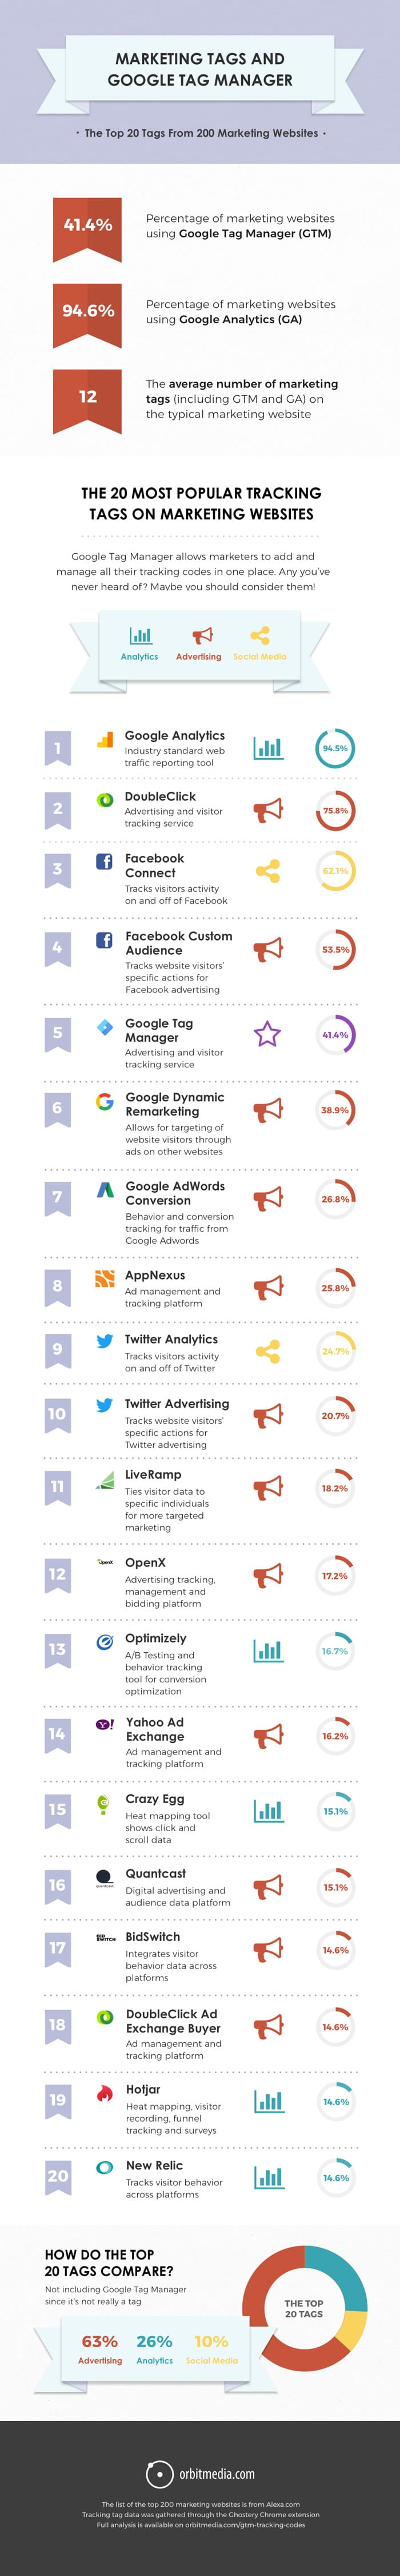 What percentage of websites use Google Tag Manager? What are they tracking? [INFOGRAPHIC]